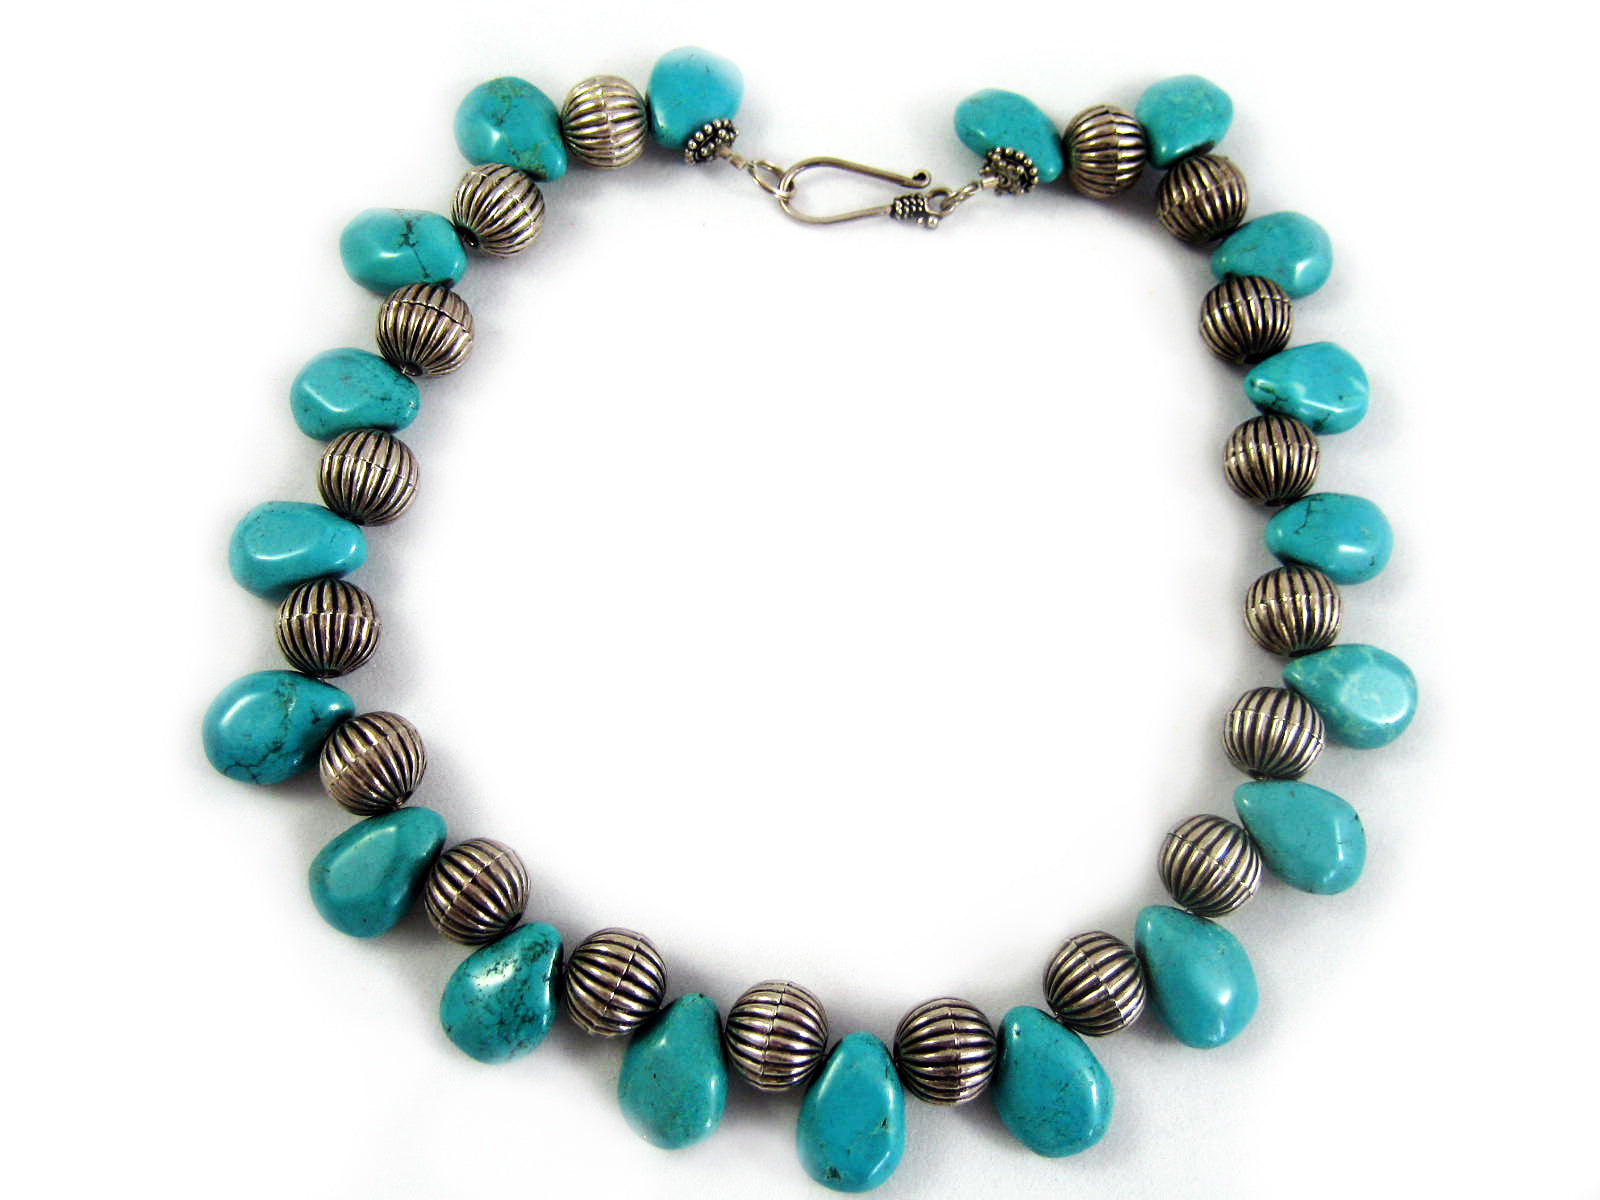 Pear shaped Turquoise Howlite drops between ridged antiqued round beads- AR Collection